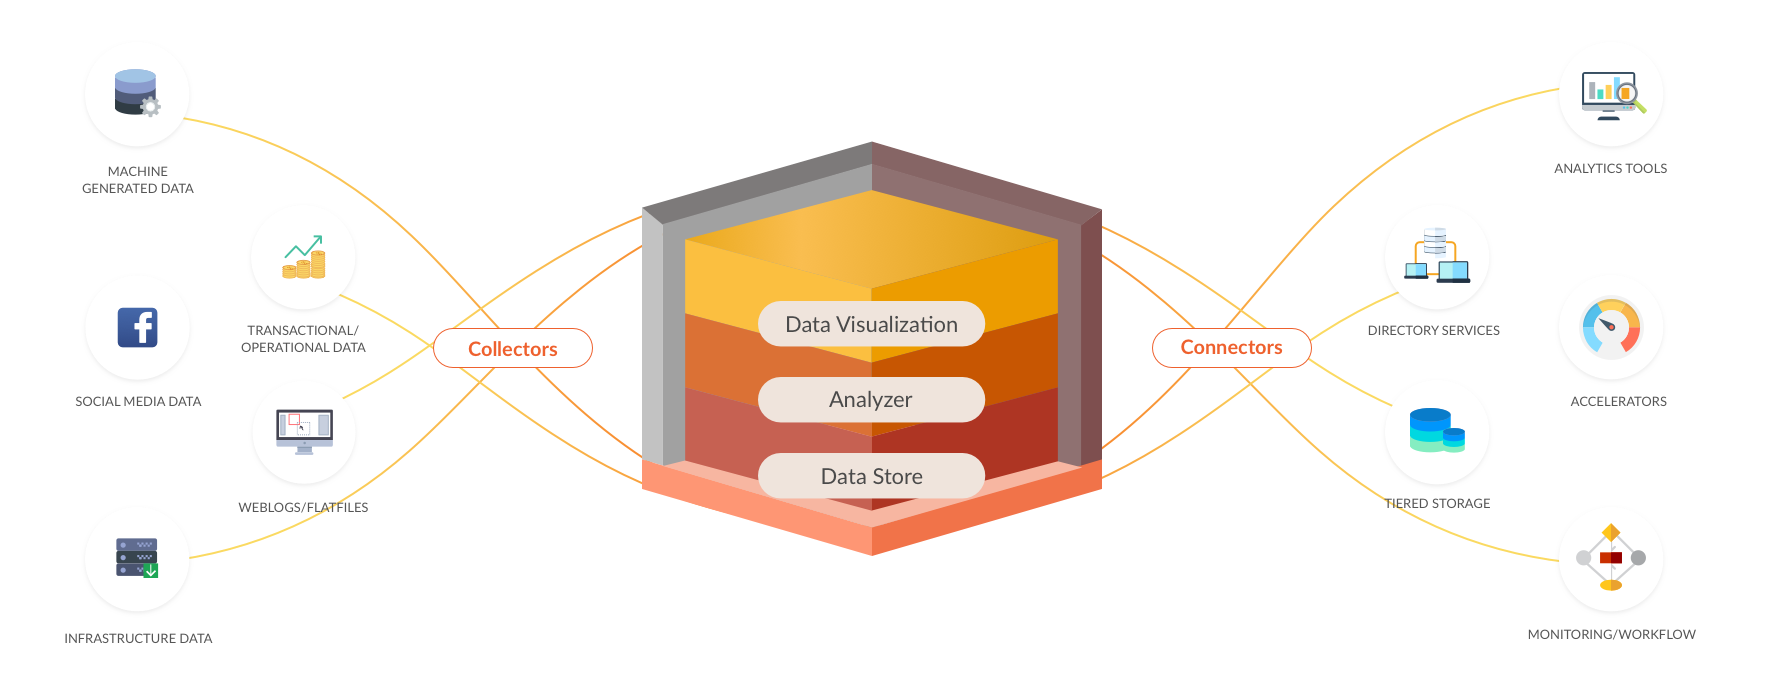 iFusion Analytics Diagram_Simplified.png